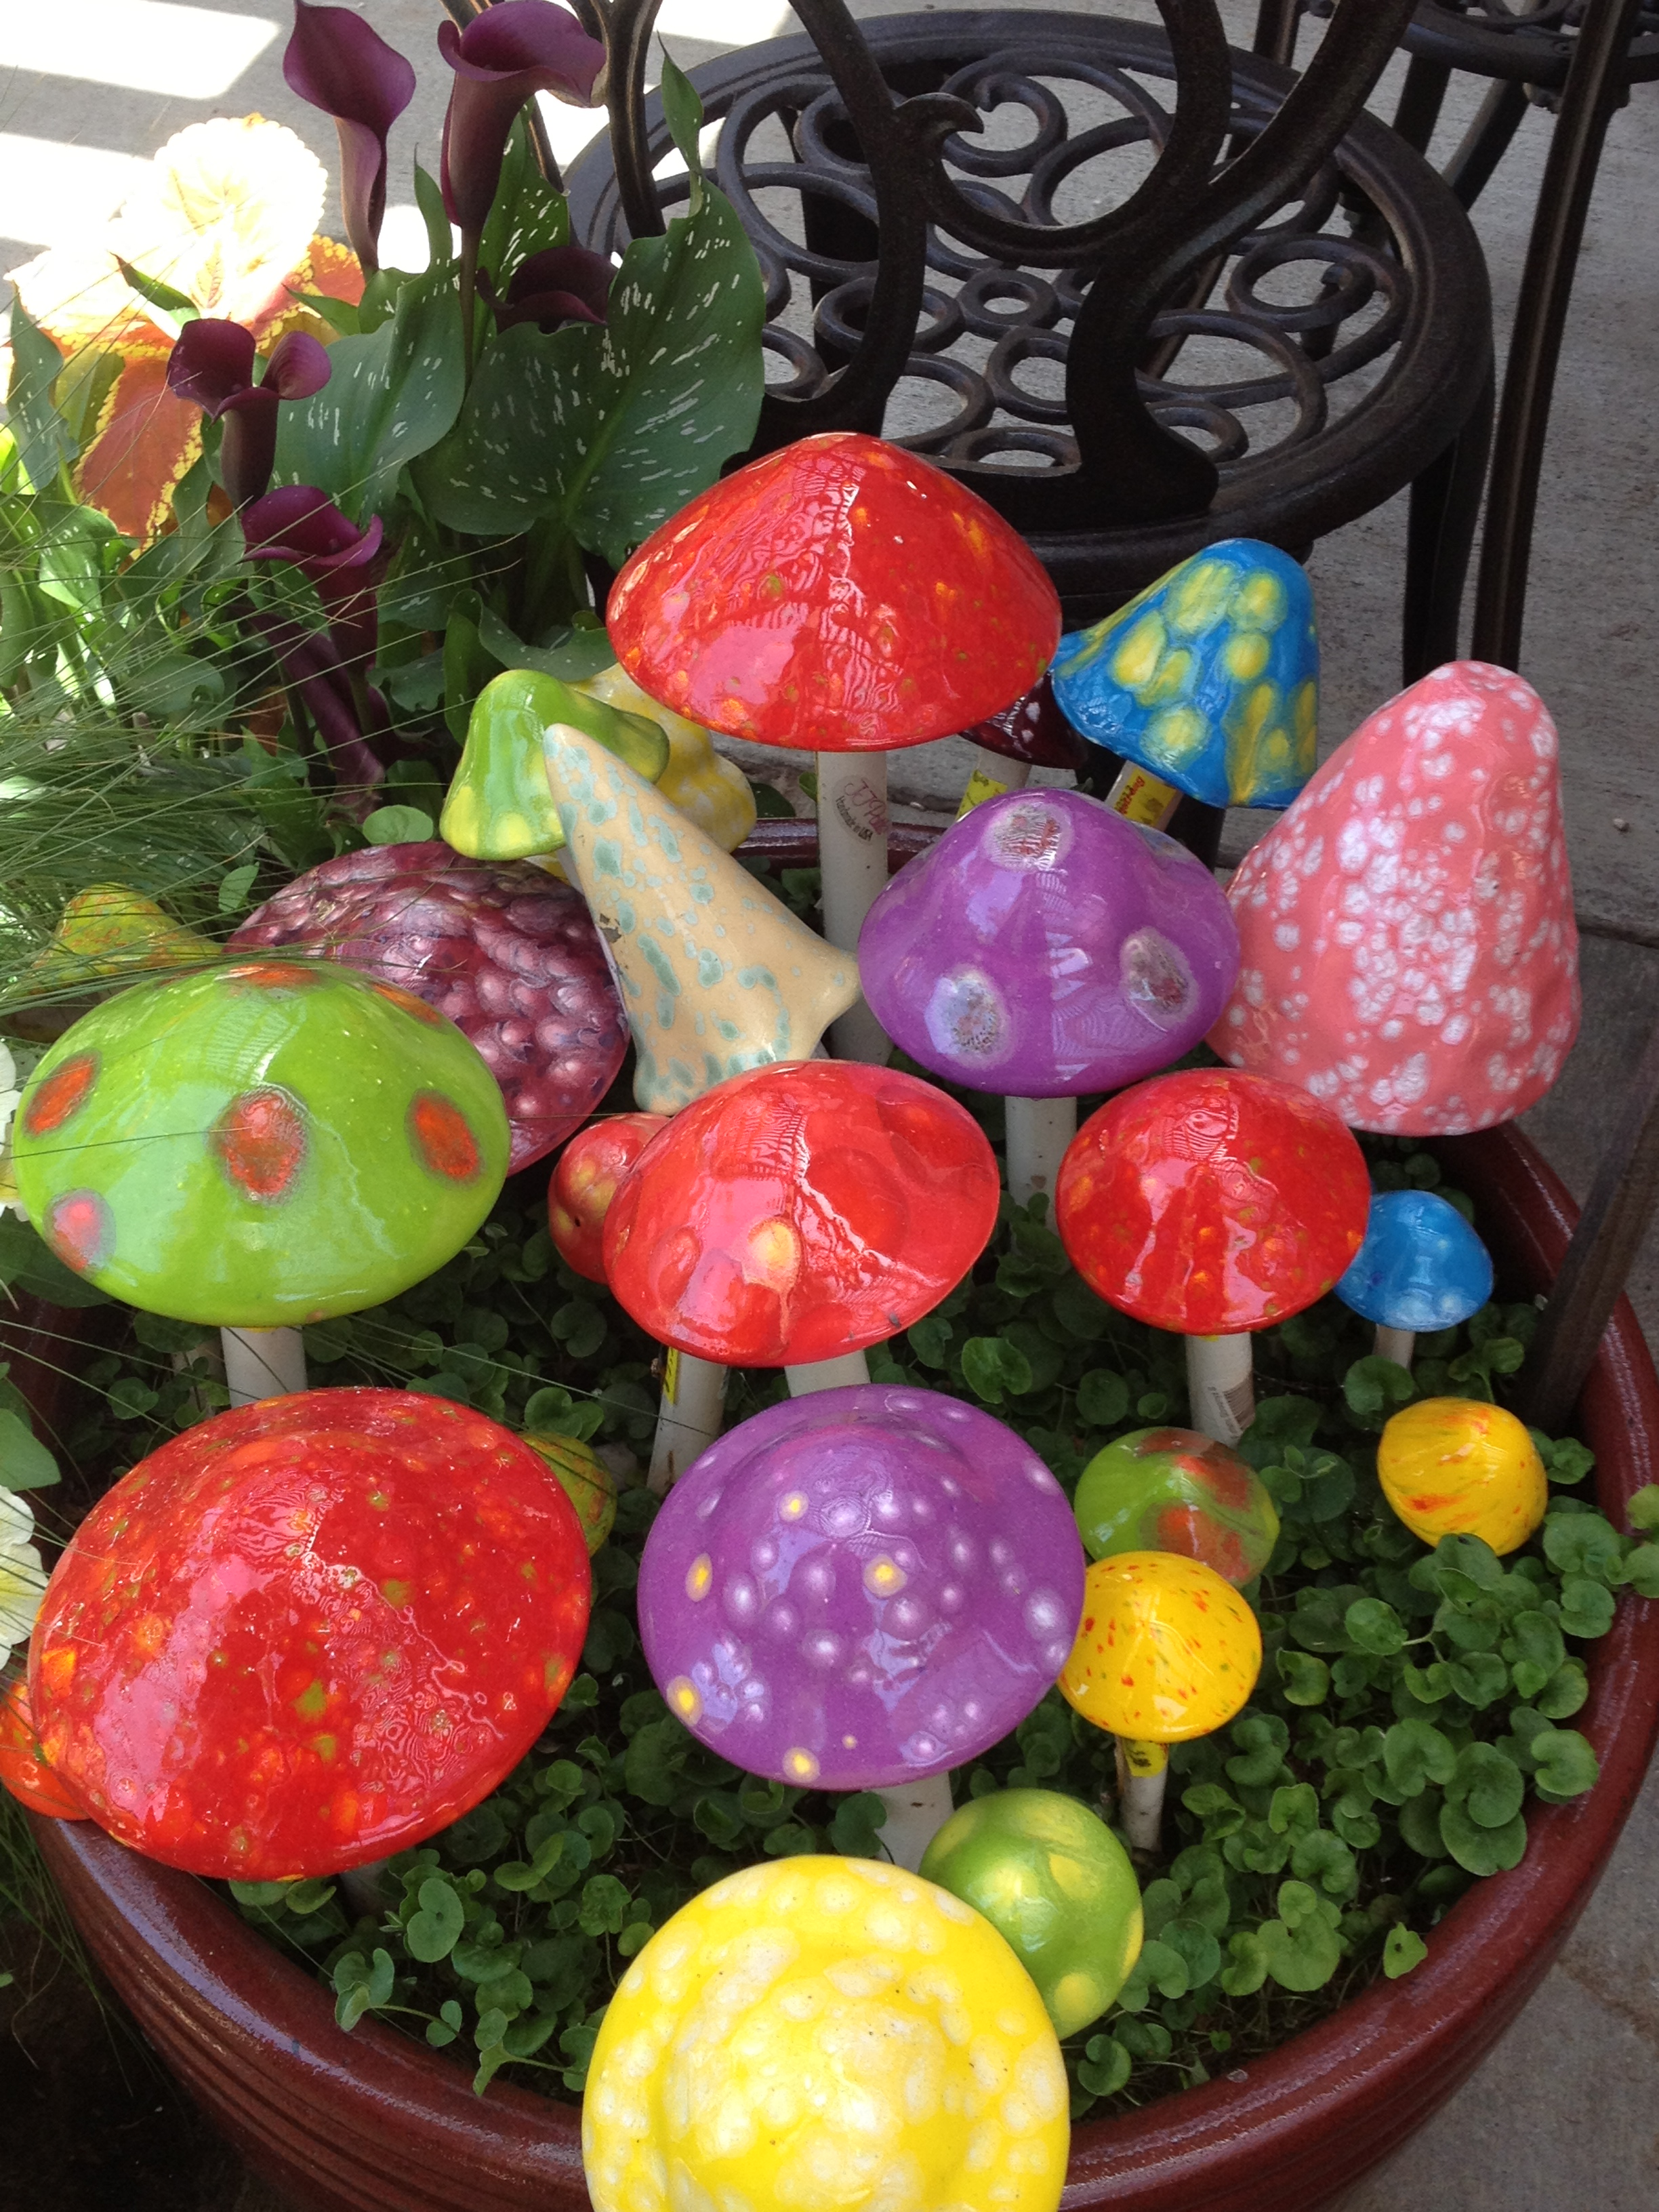 Diy garden decorations - Decoration L Easy Diy Garden Projects You Can Start Now